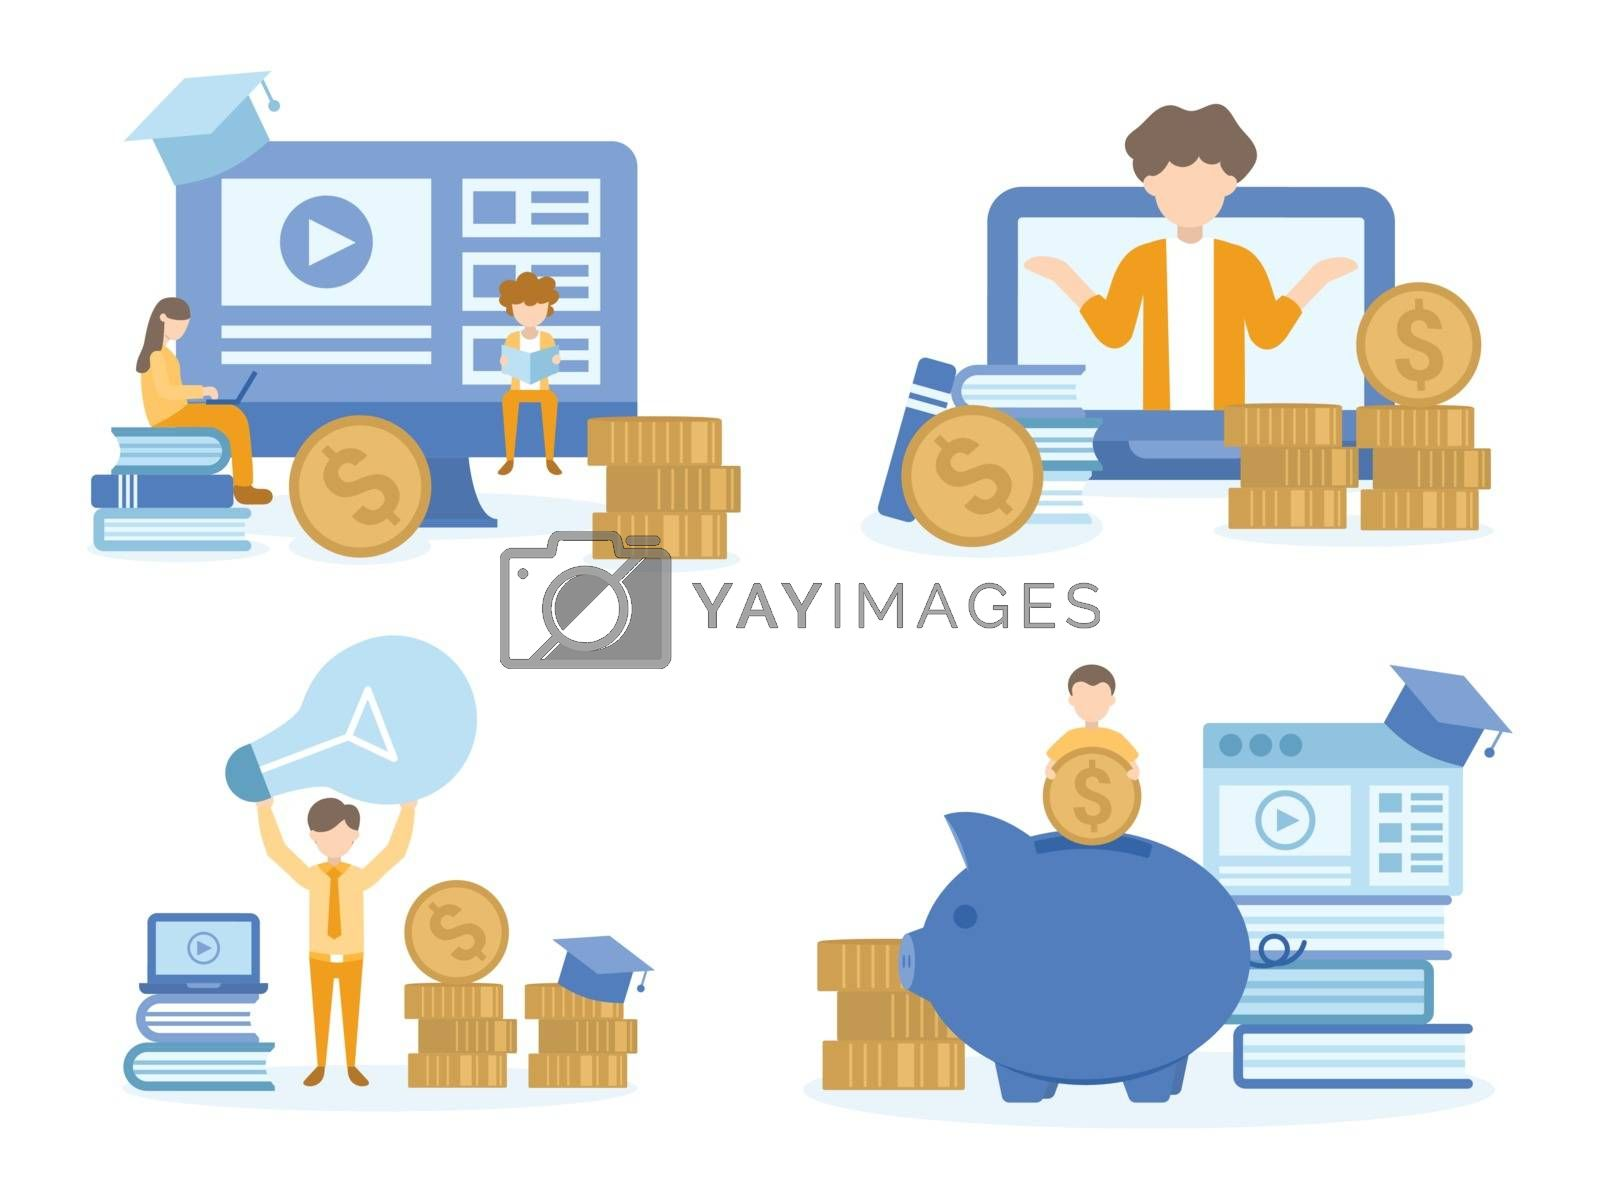 Student learning investment online courses. Concept Illustration of investment education for training, studying, e-learning, and online course.